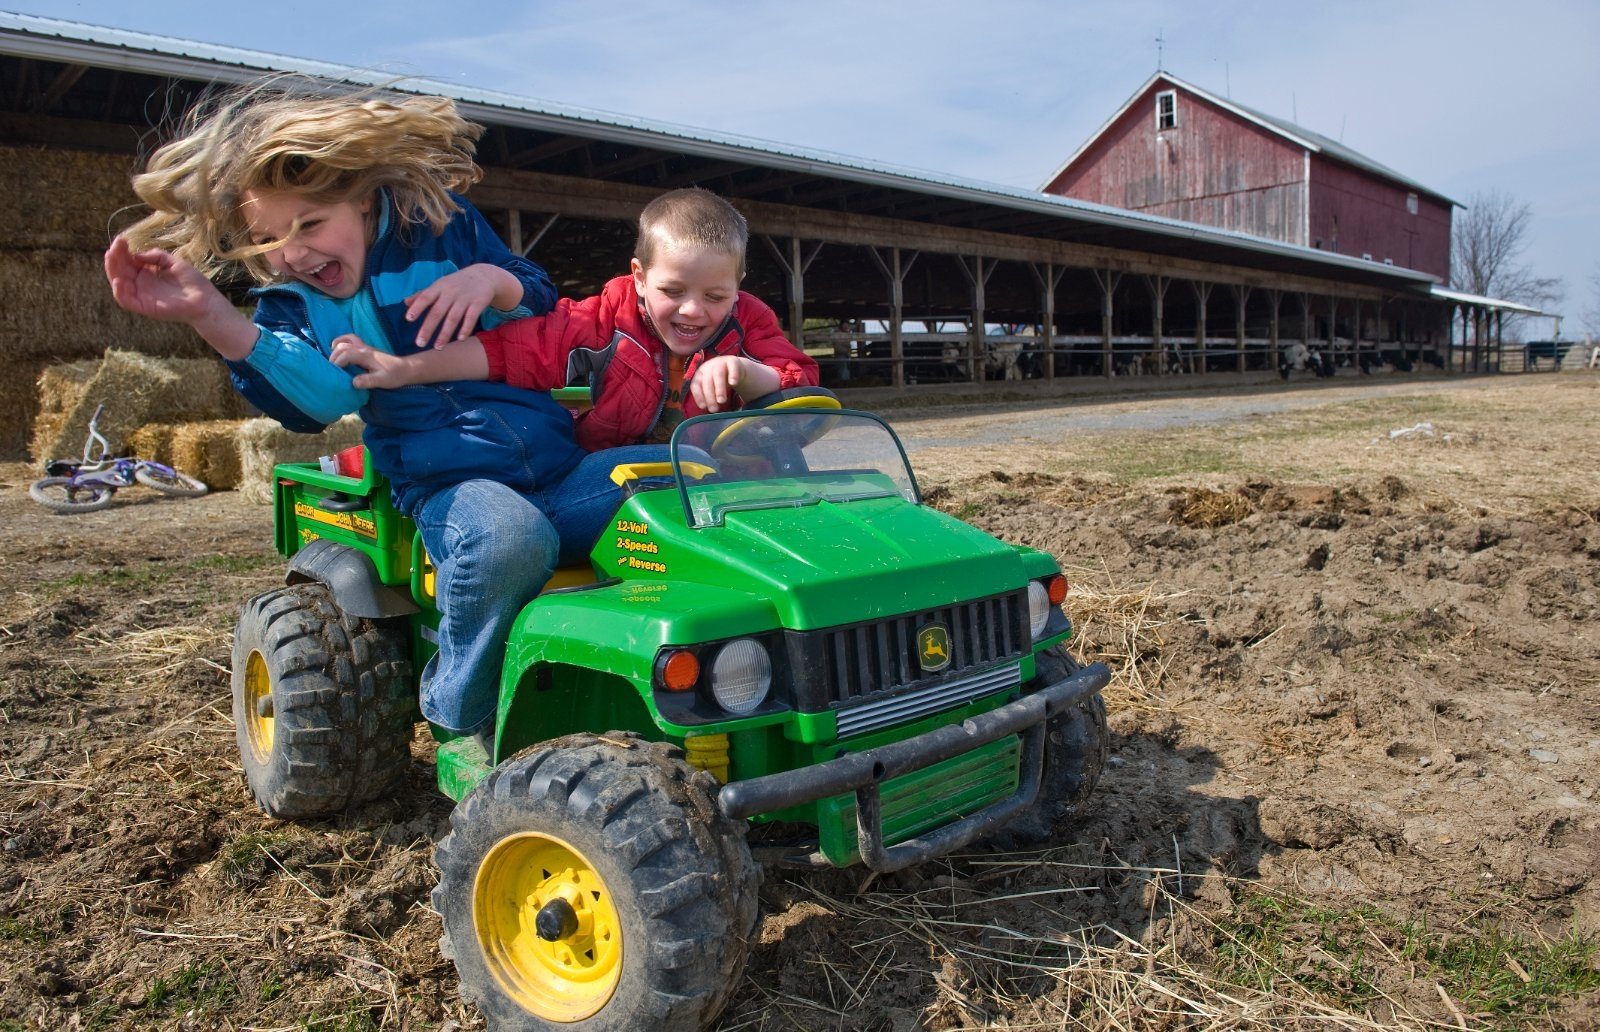 Two children play in a toy tractor on a farm.